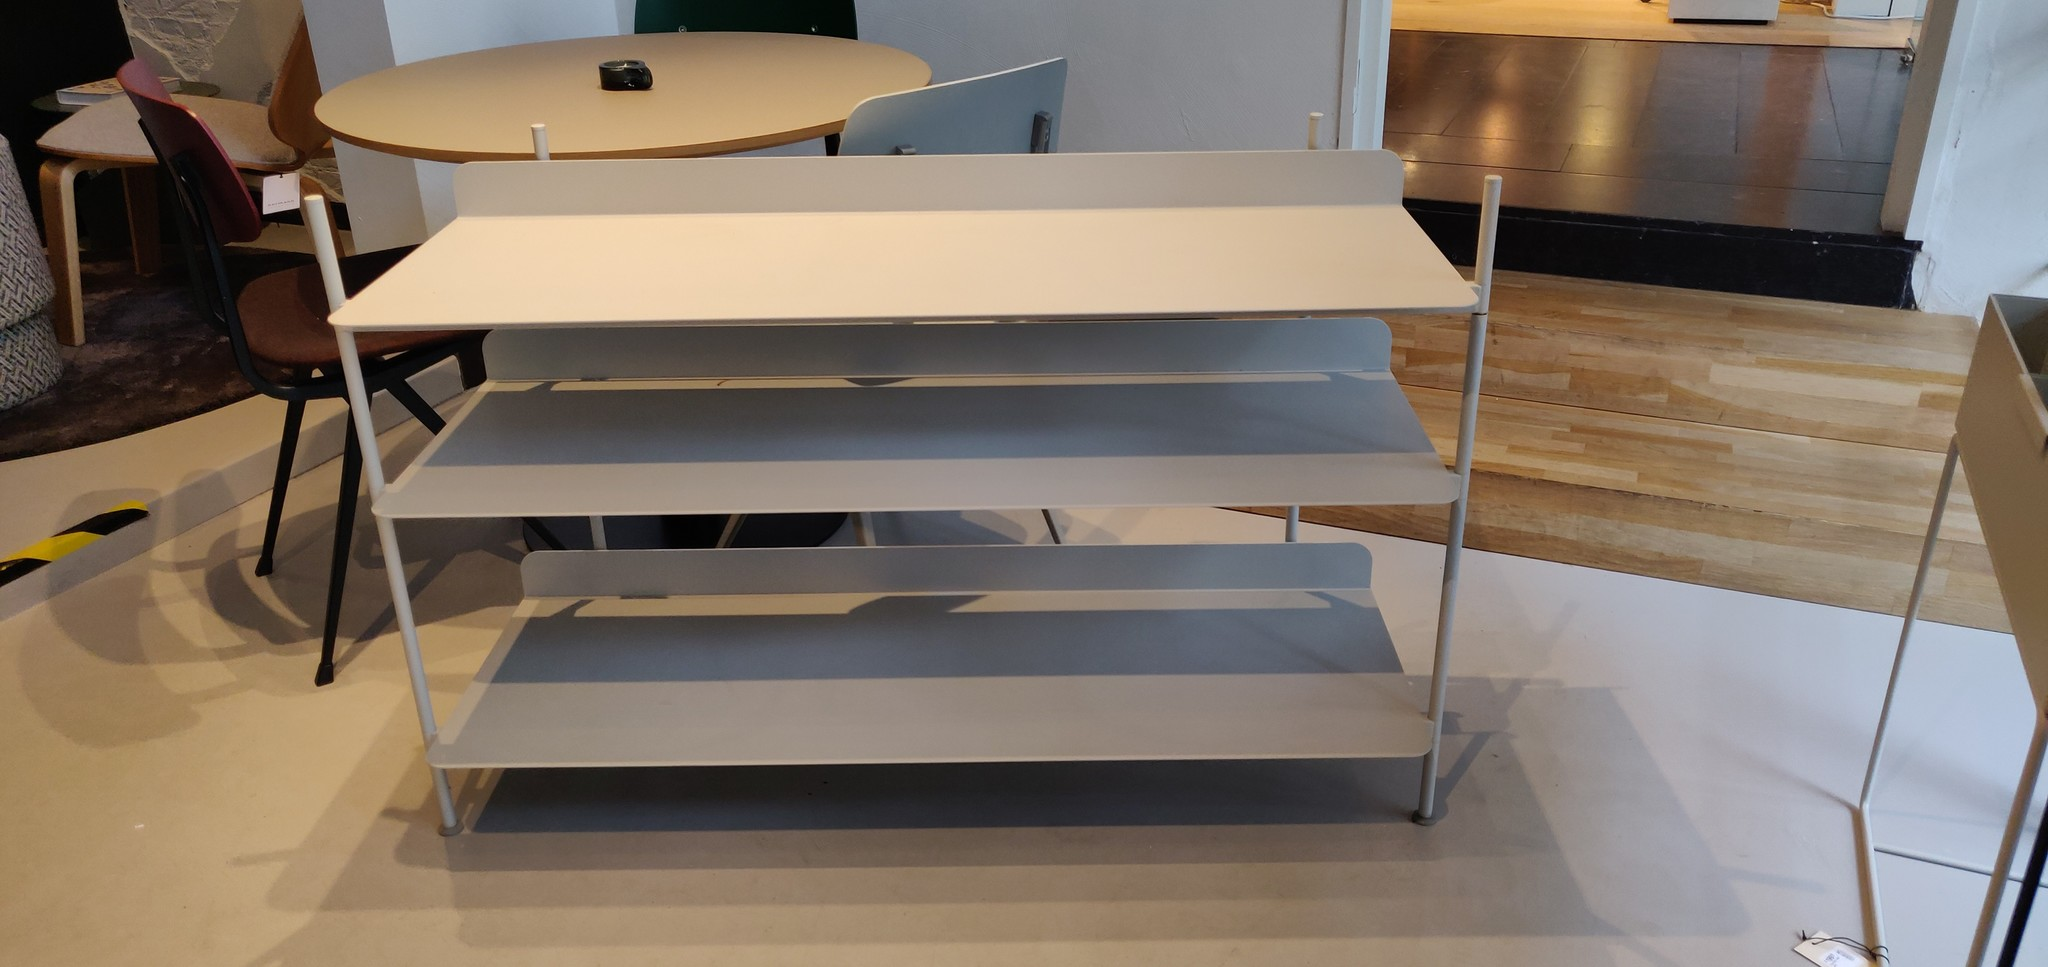 Toonzaalmodel Compile Shelving System Config. 2 - Light grey (50061)-4